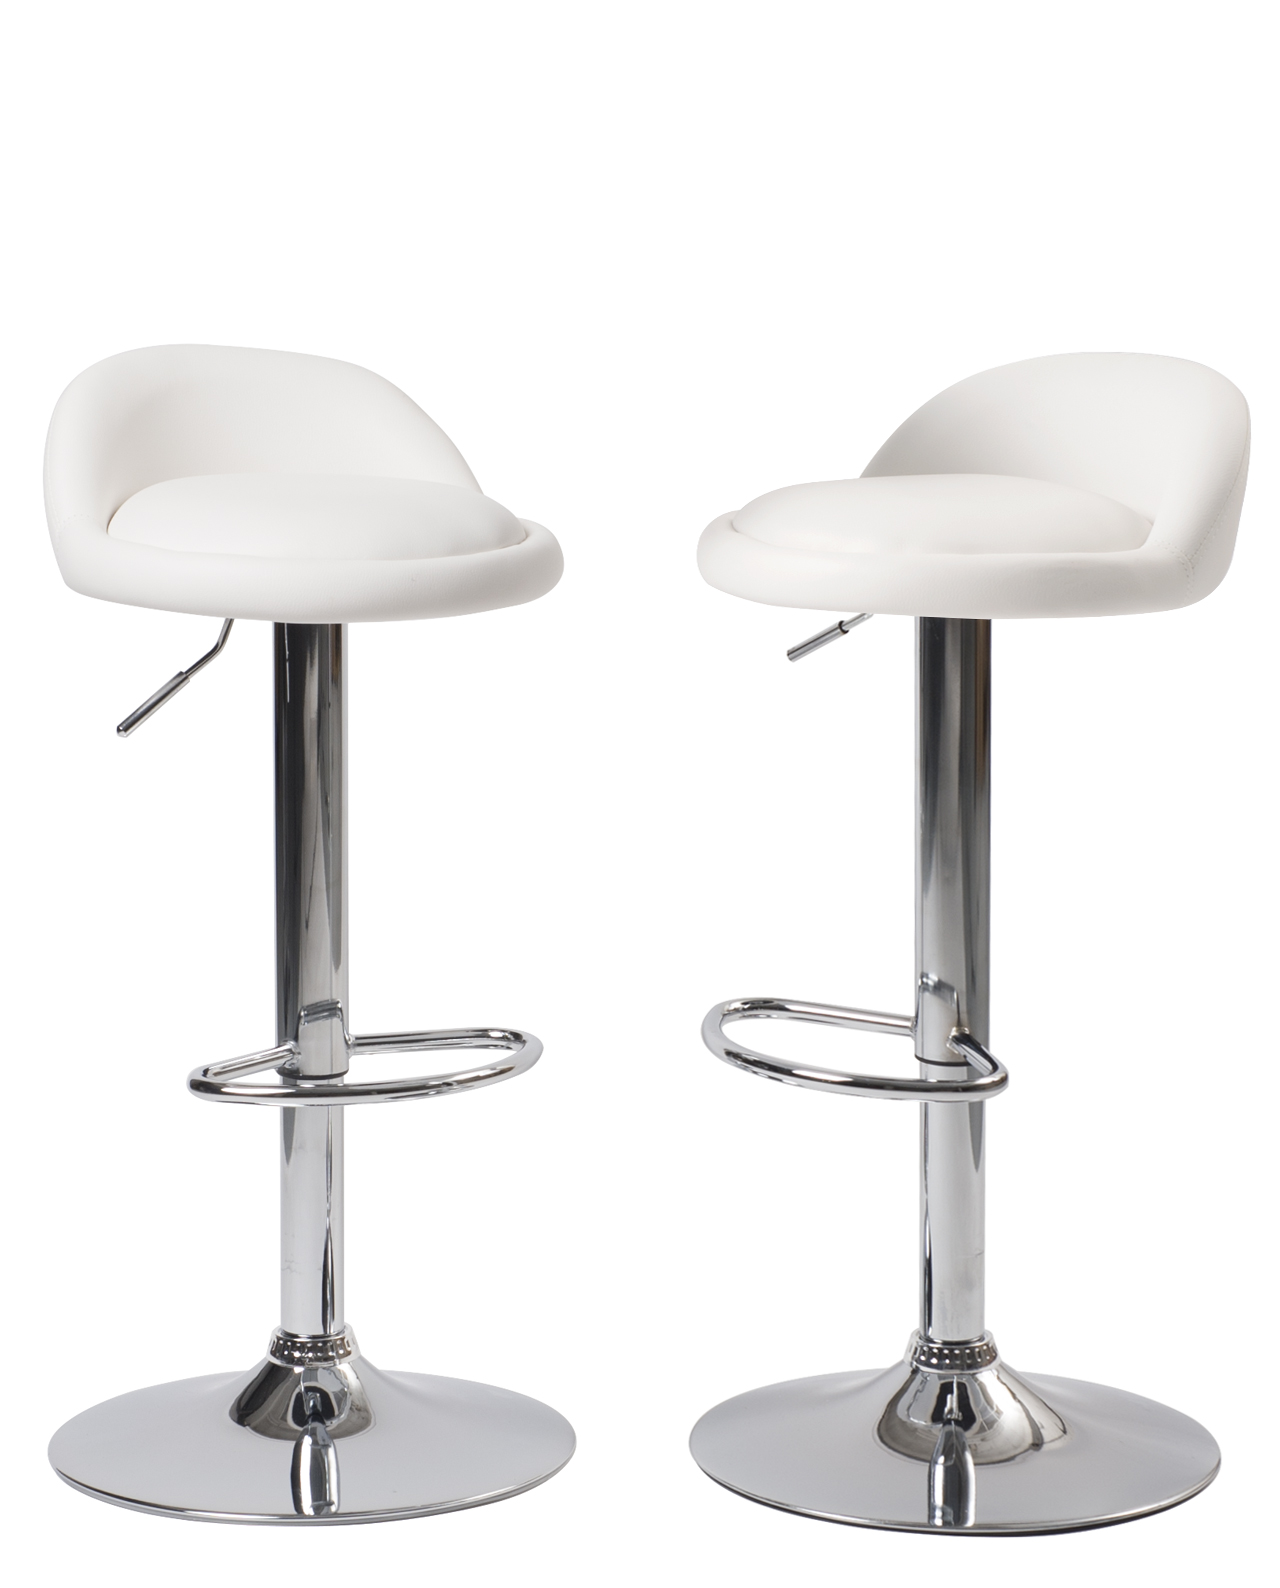 Tabourets De Bar Réglables Rubens Sati Lot De 2 Tabourets De Bar Pu Et Chrome